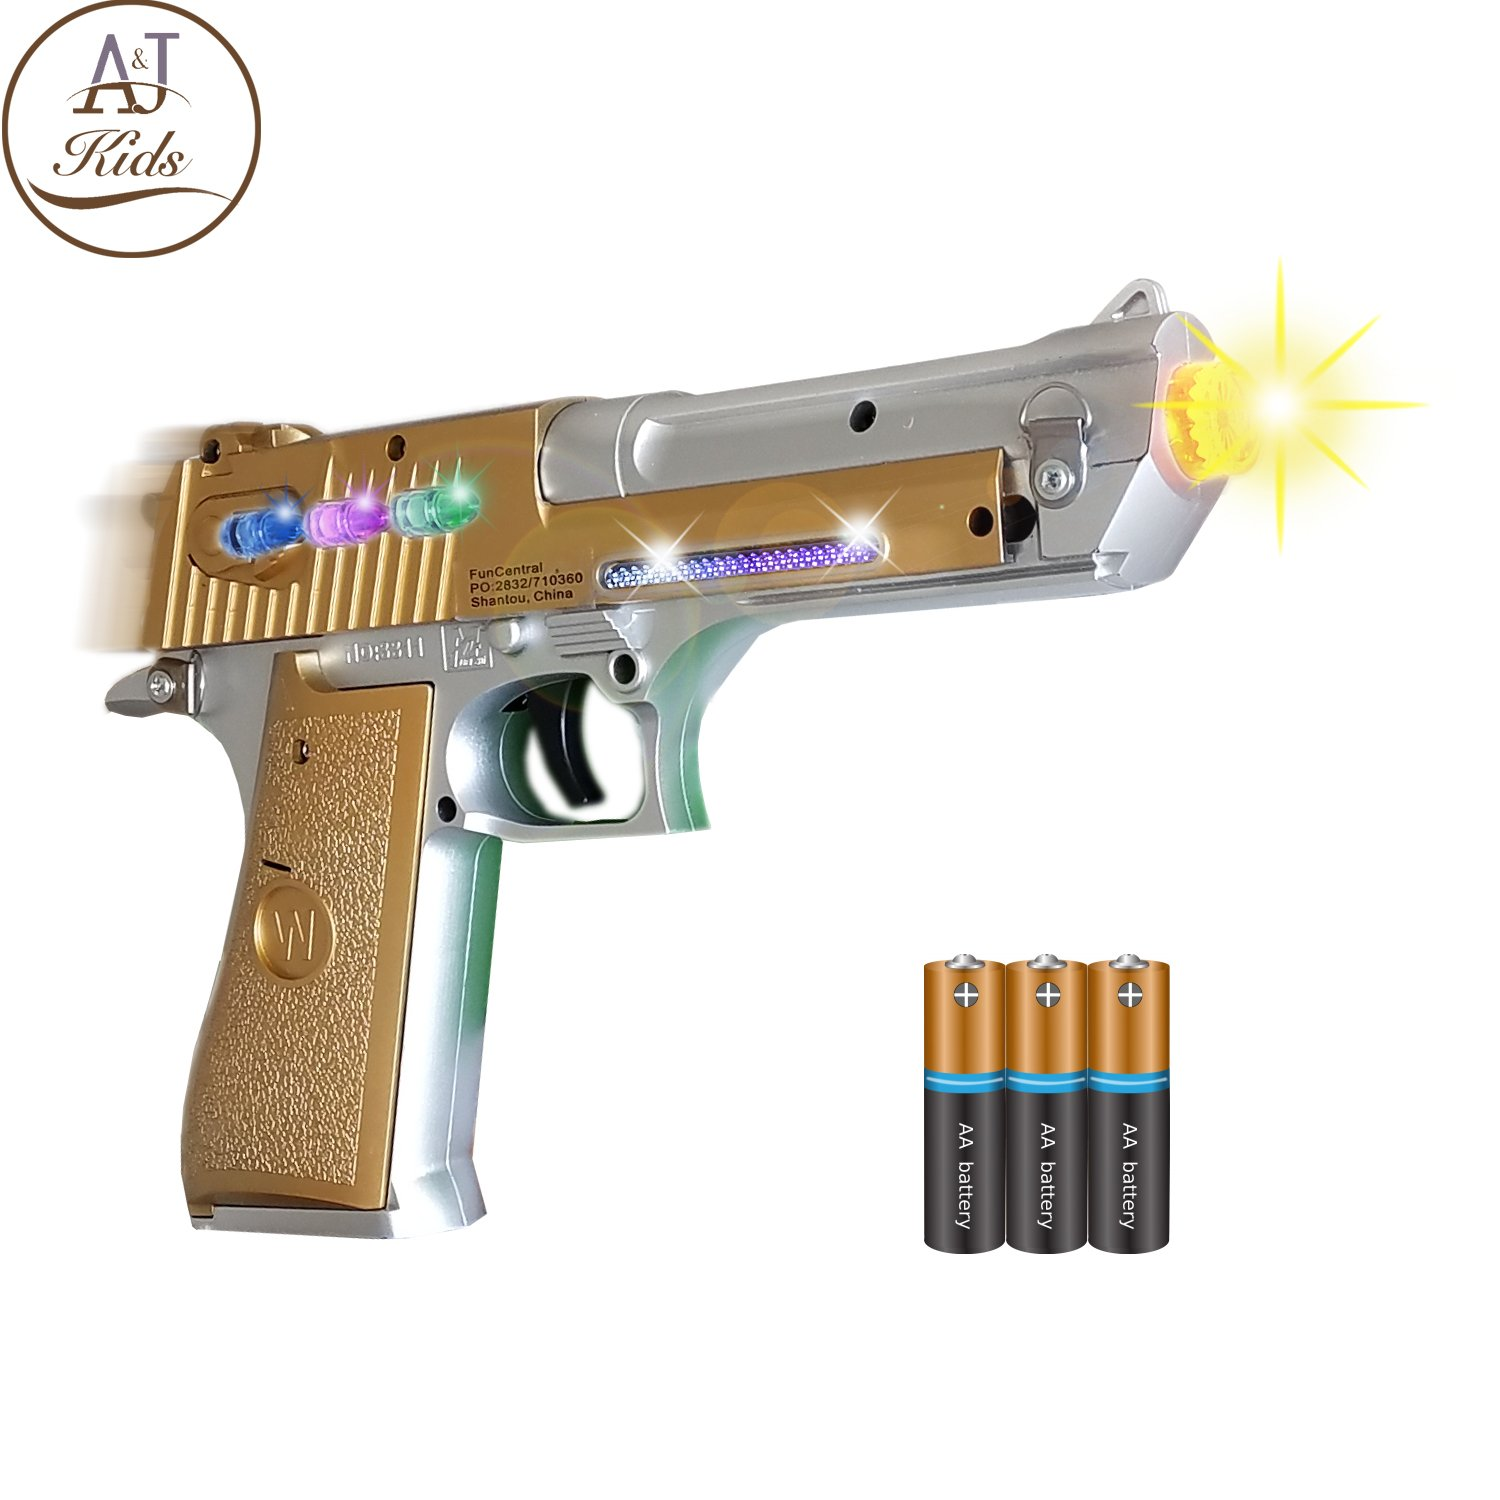 ANJ Kids Toys - Pretend Play Toy Gun for Boys | Toy Pistol Gun with Flashing Lights and Sound | Detailed Craft with Rapid Firing and Vibrating (Age 3+, Batteries Included) ANJ International